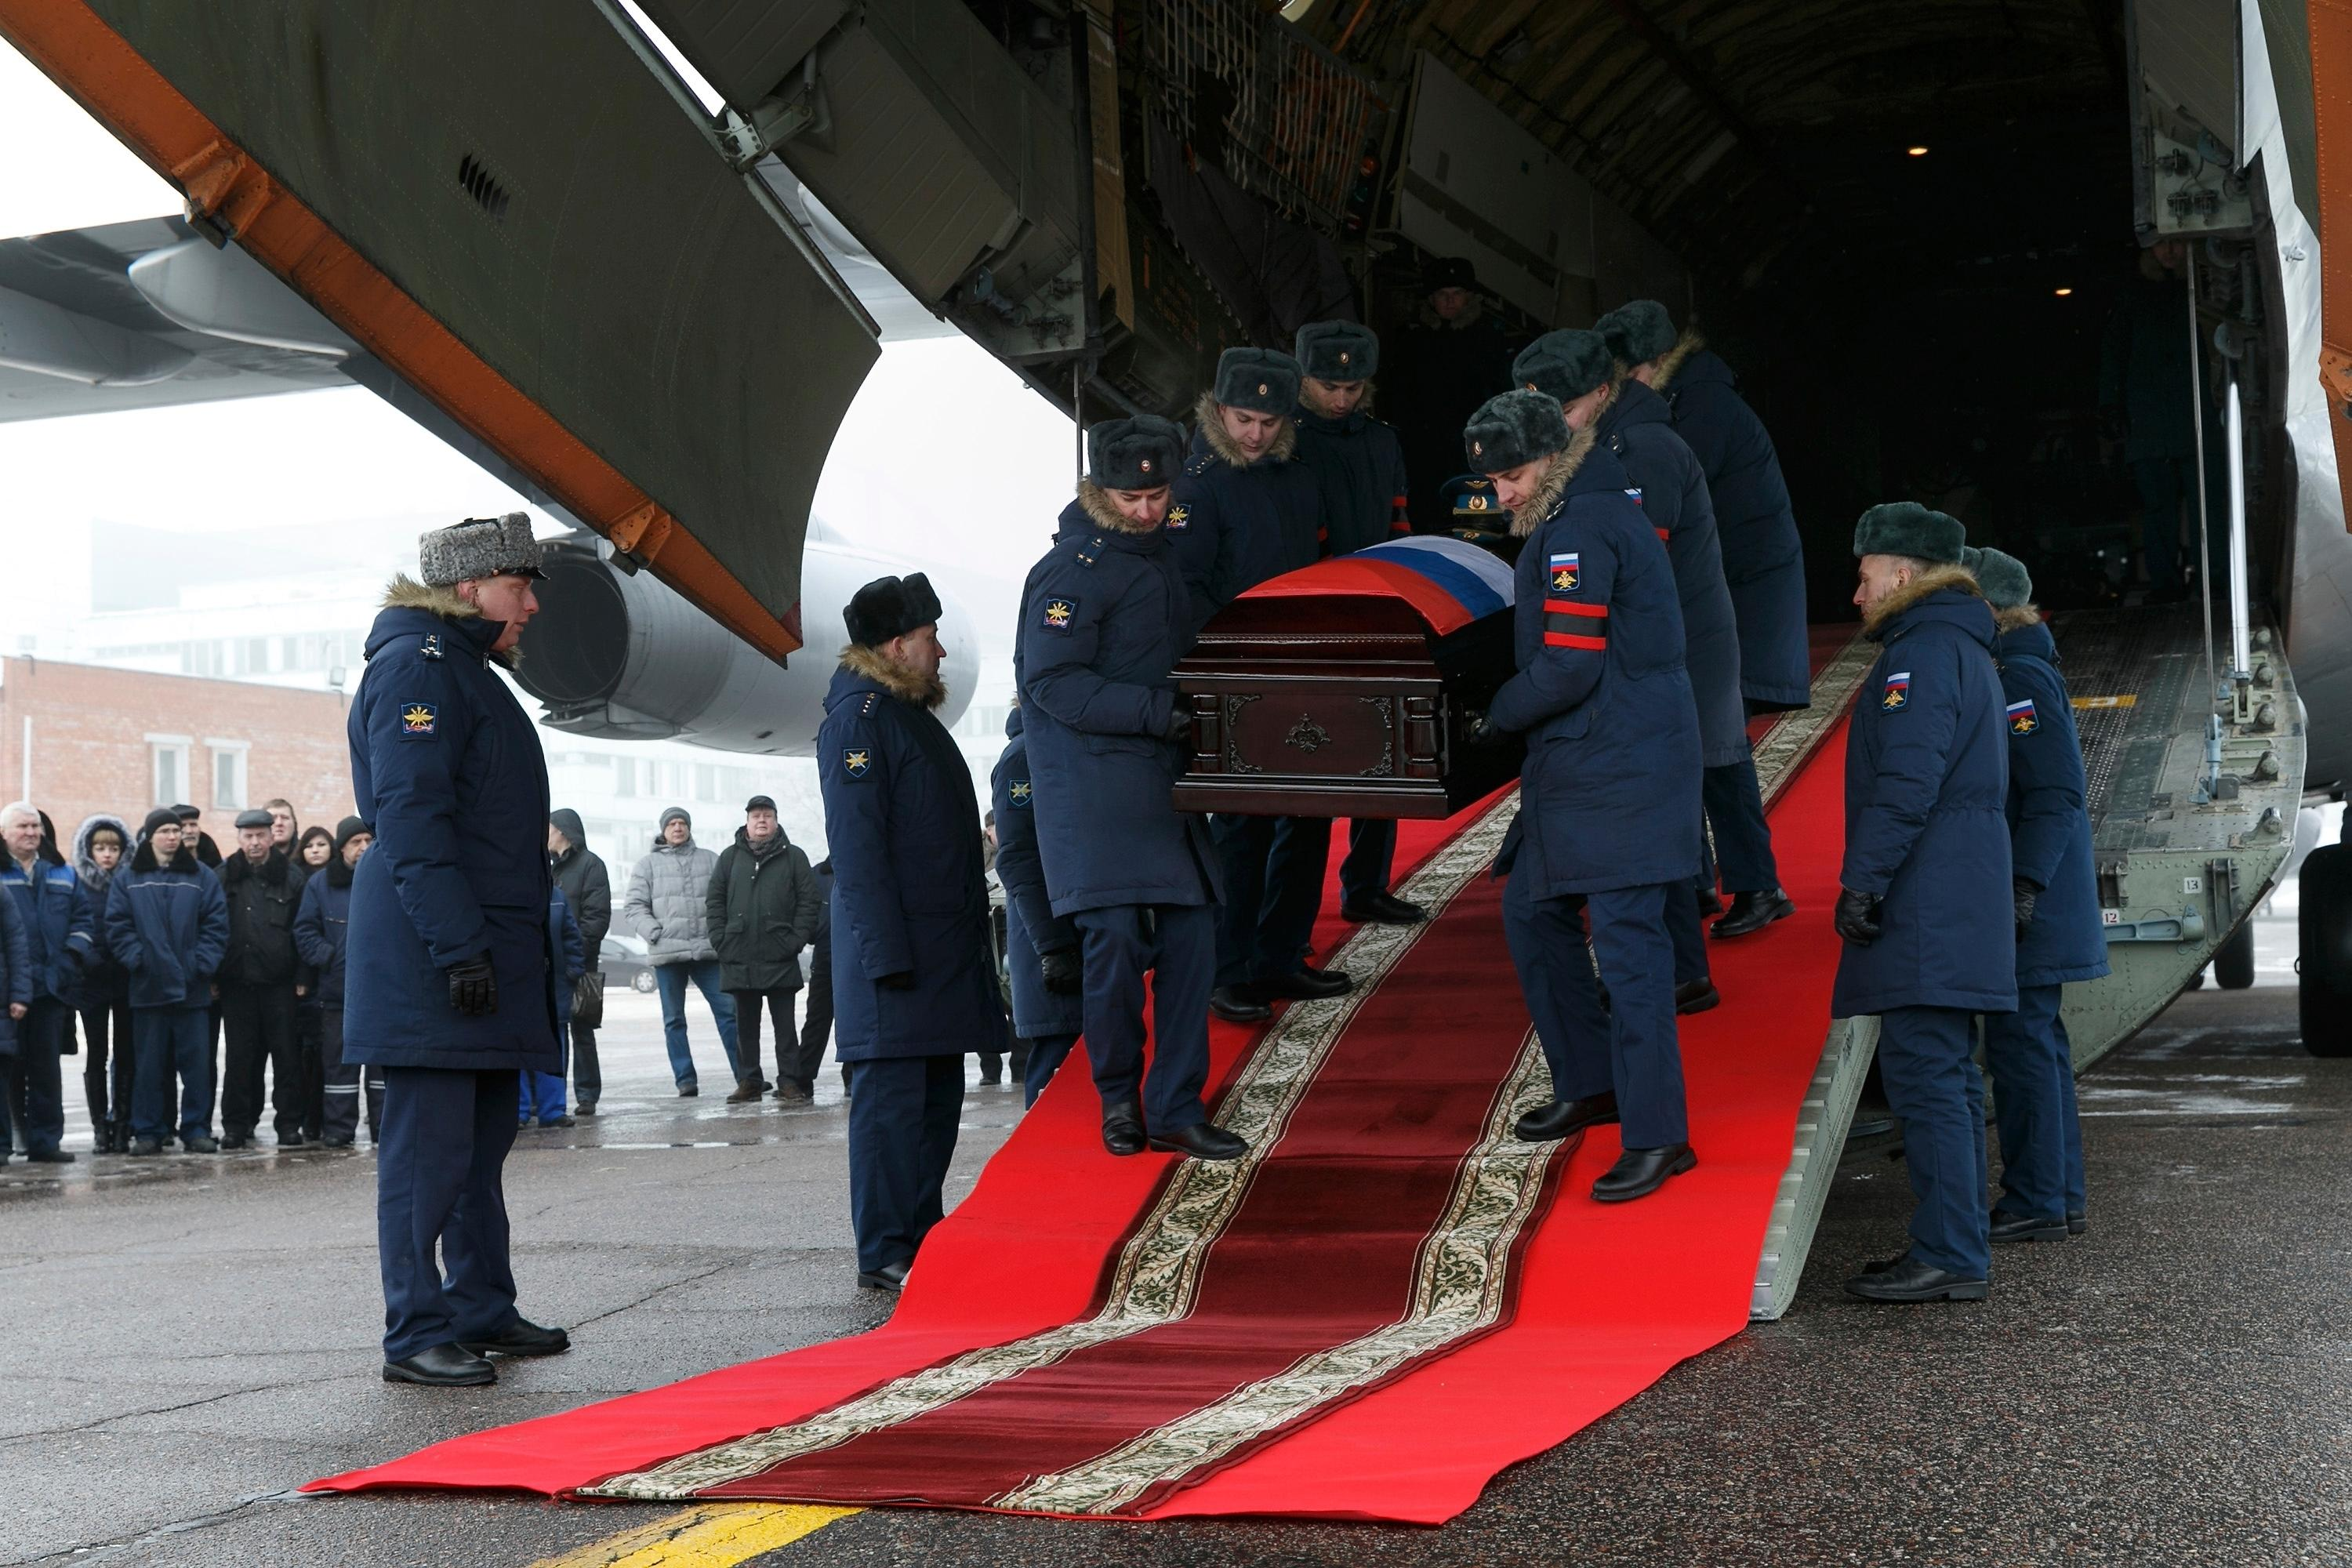 Russian officers carry out from a plane a coffin with the body of Russian Roman Filipov, the pilot of the Su-25 jet who ejected after Syrian insurgents shot down his plane traded fire with militants on the ground and then blew himself up to avoid being captured, during a funeral service in Voronezh, Russia, Thursday, Feb. 8, 2018. (Vadim Savitsky/Pool Photo via AP)